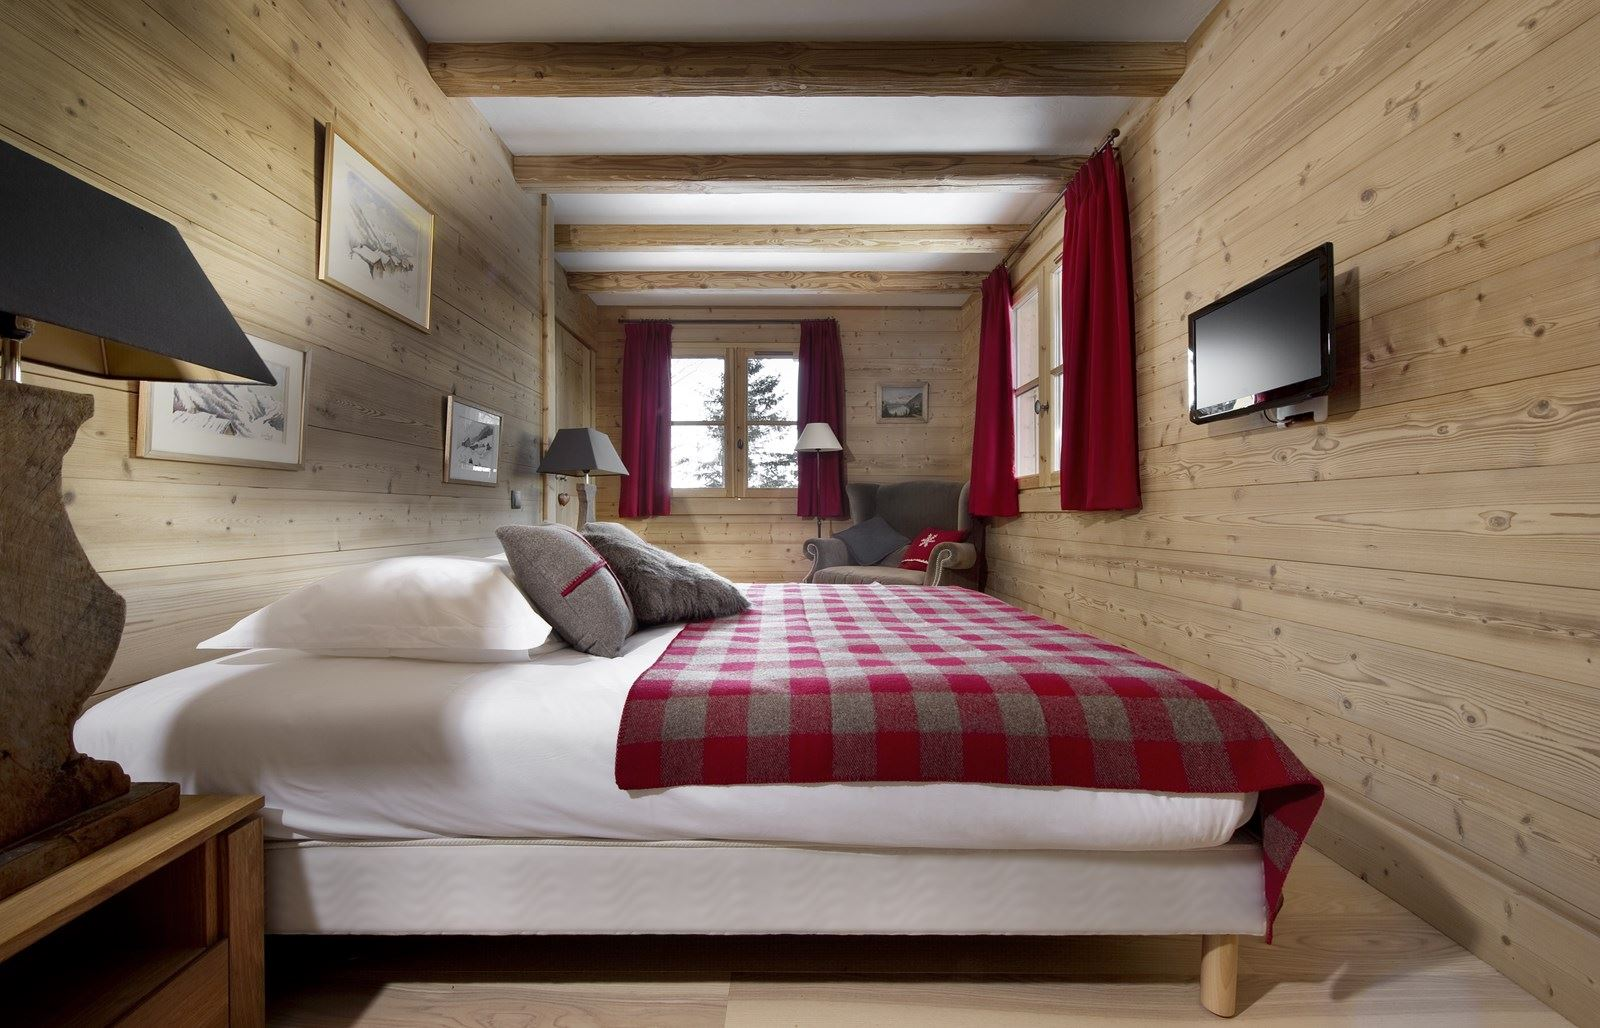 8 rooms 12 people / CHALET PETIT GREBIERS (mountain of dream)